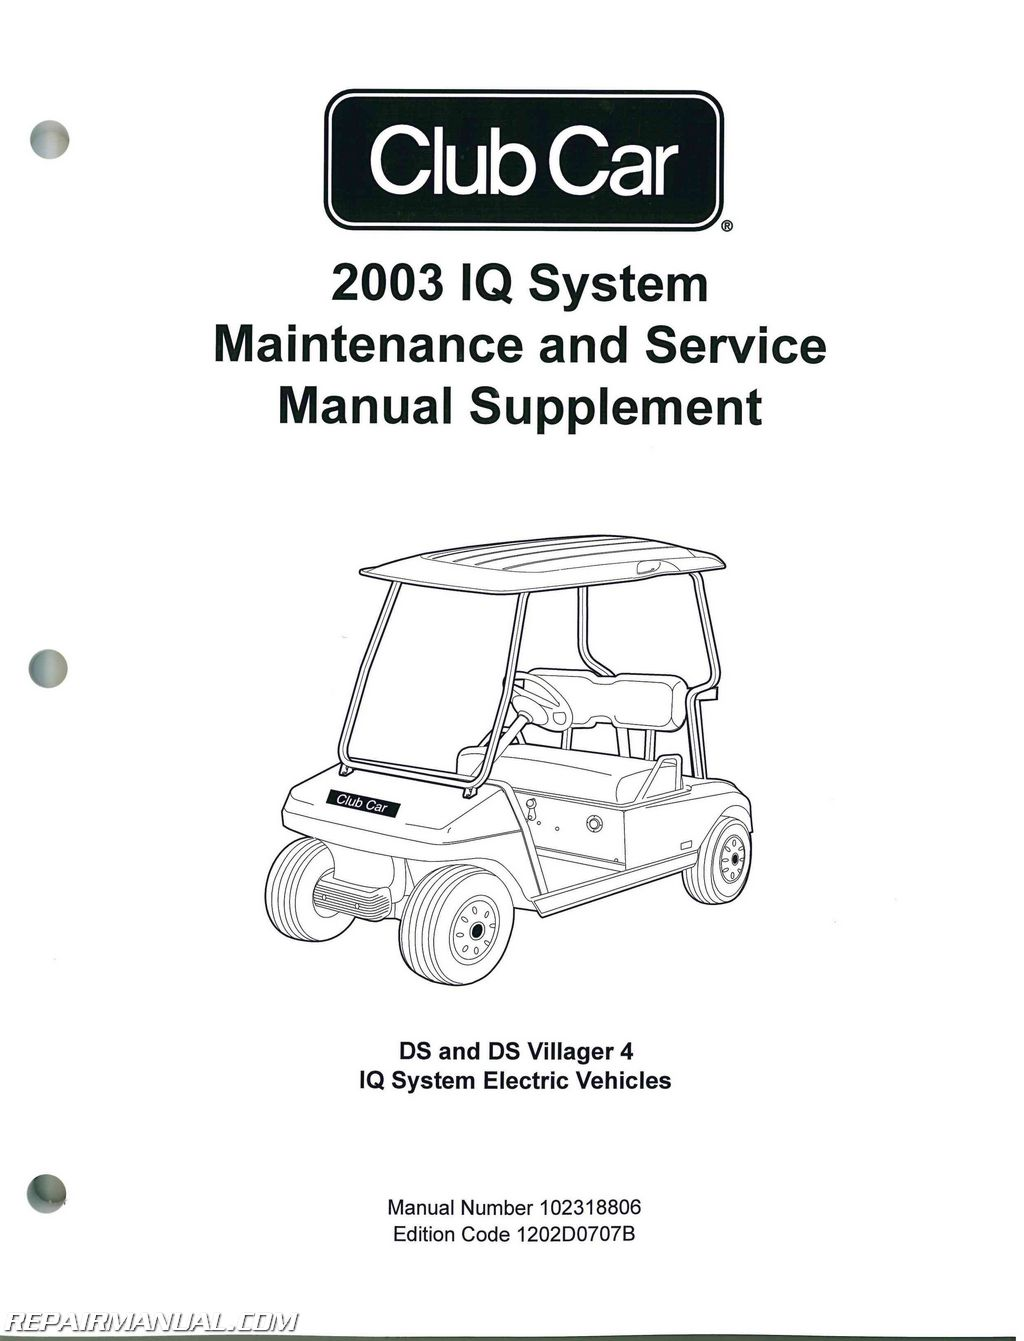 hight resolution of 2003 club car iq system maintenance service manual supplement